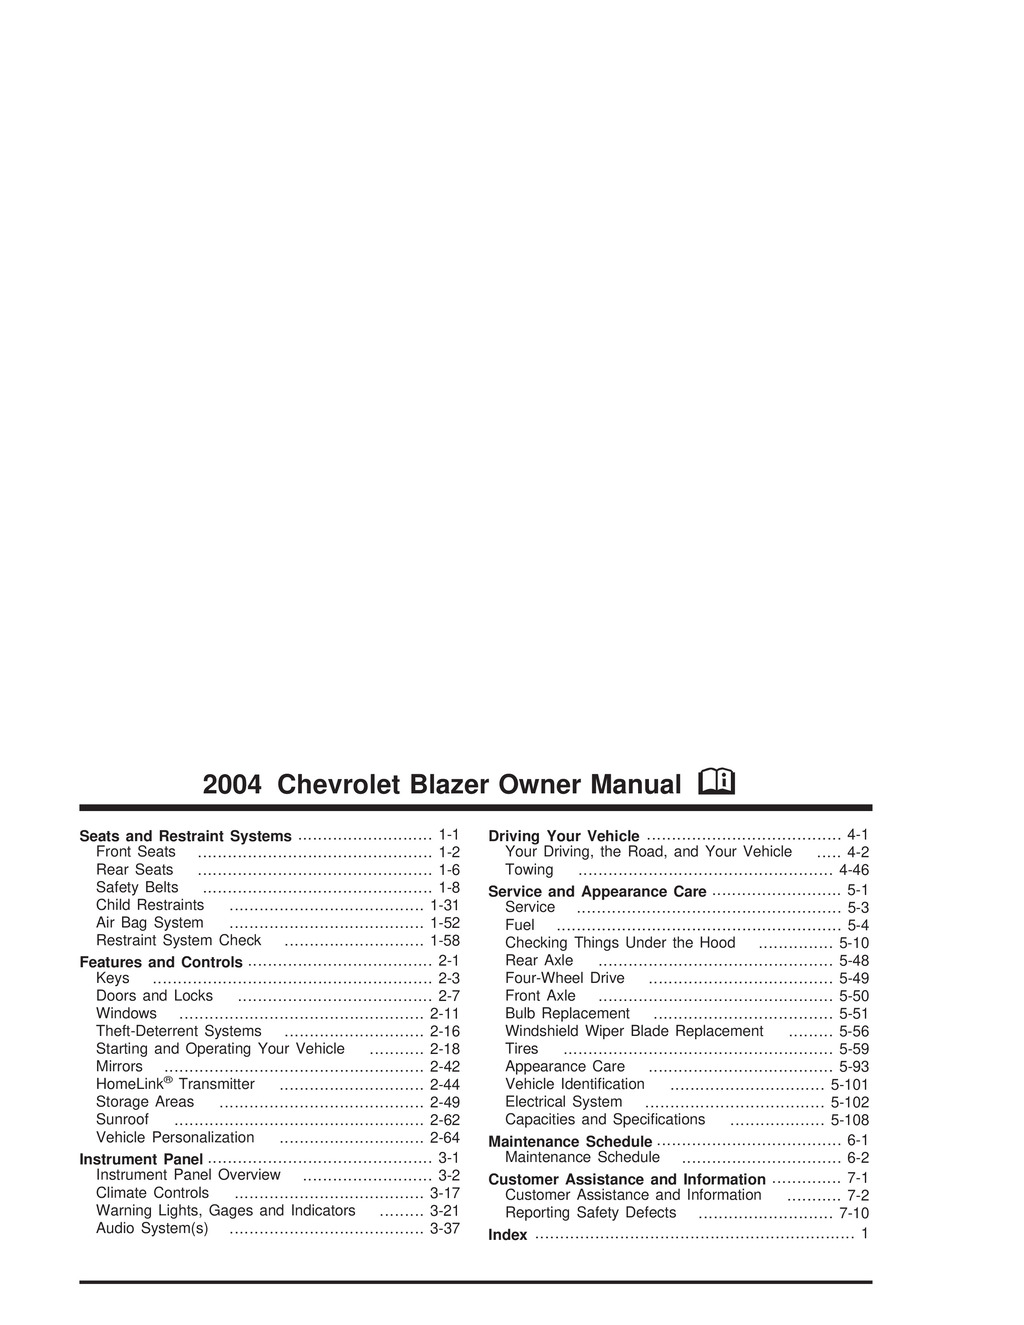 2004 Chevrolet Blazer owners manual